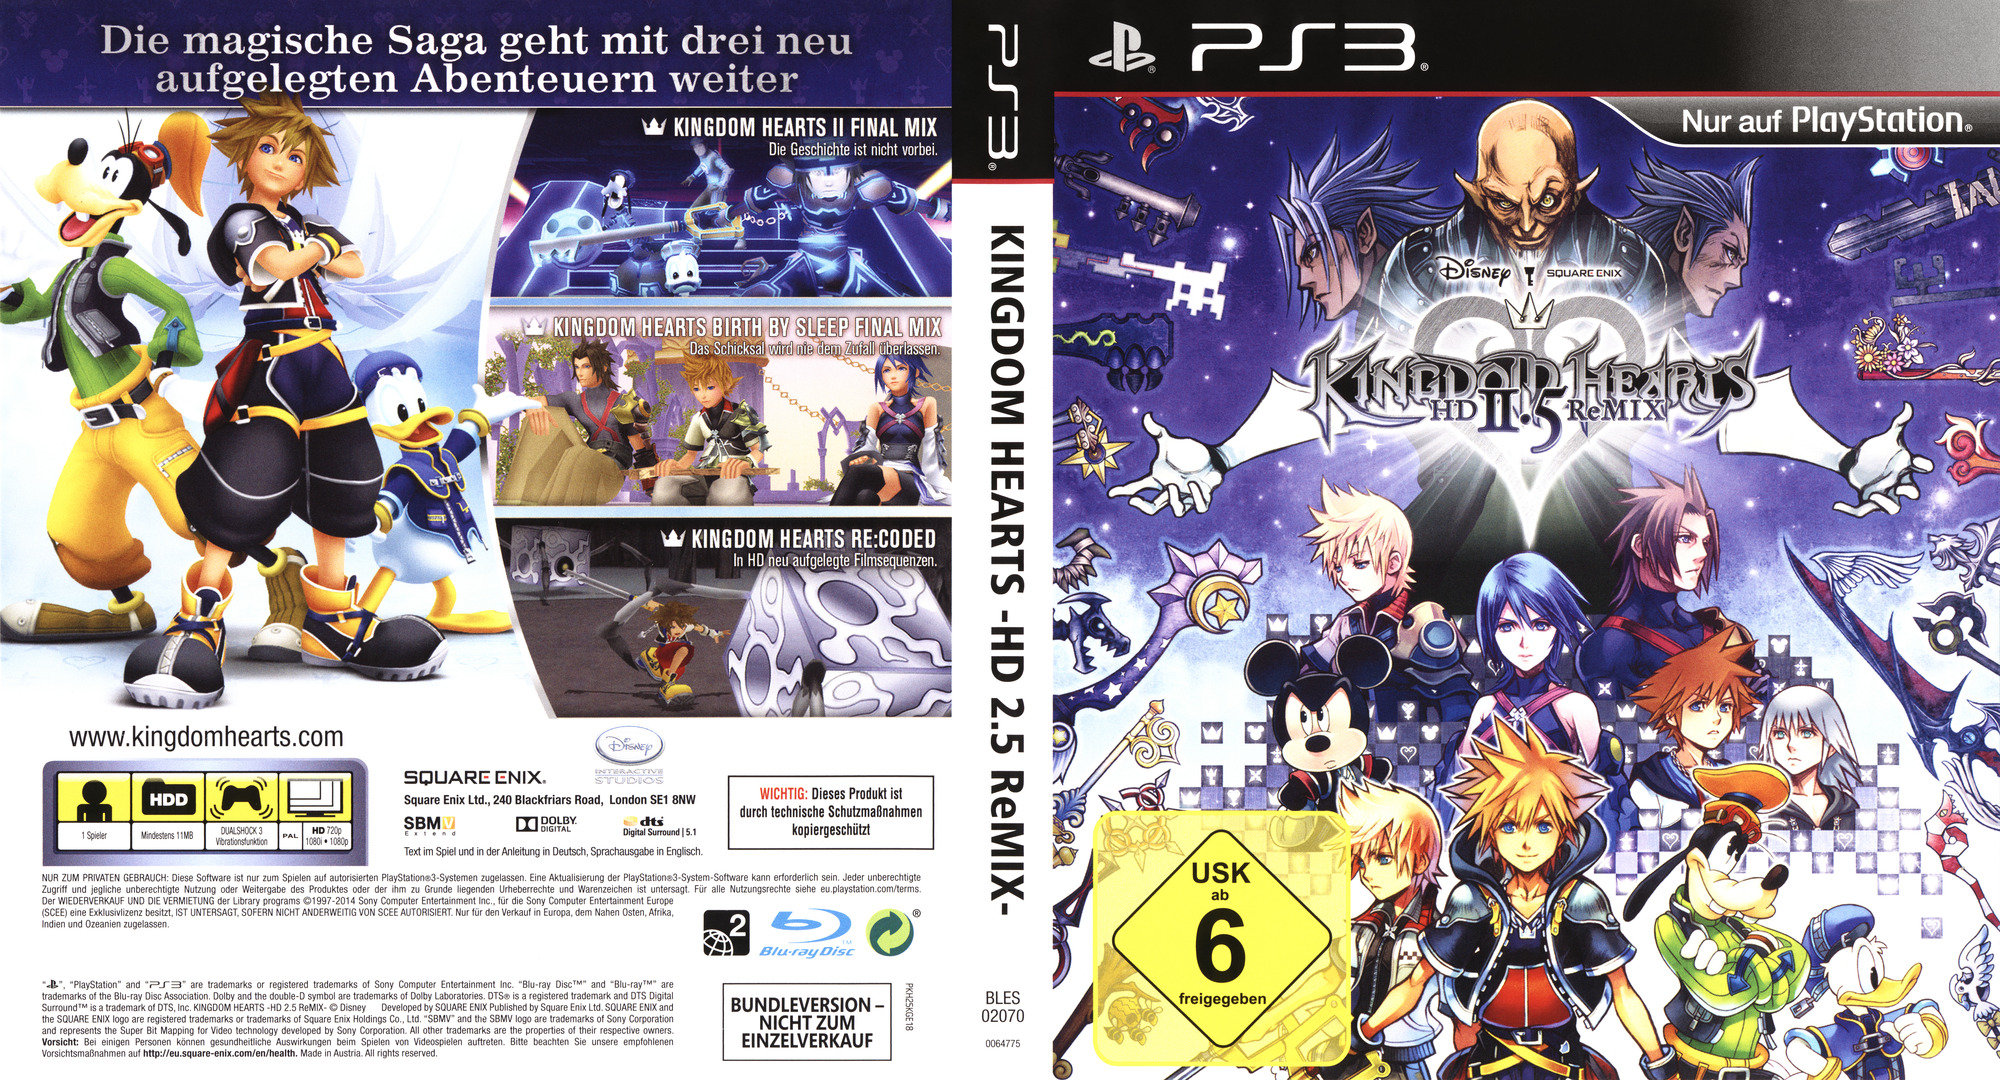 Bles02070 Kingdom Hearts Hd 2 5 Remix